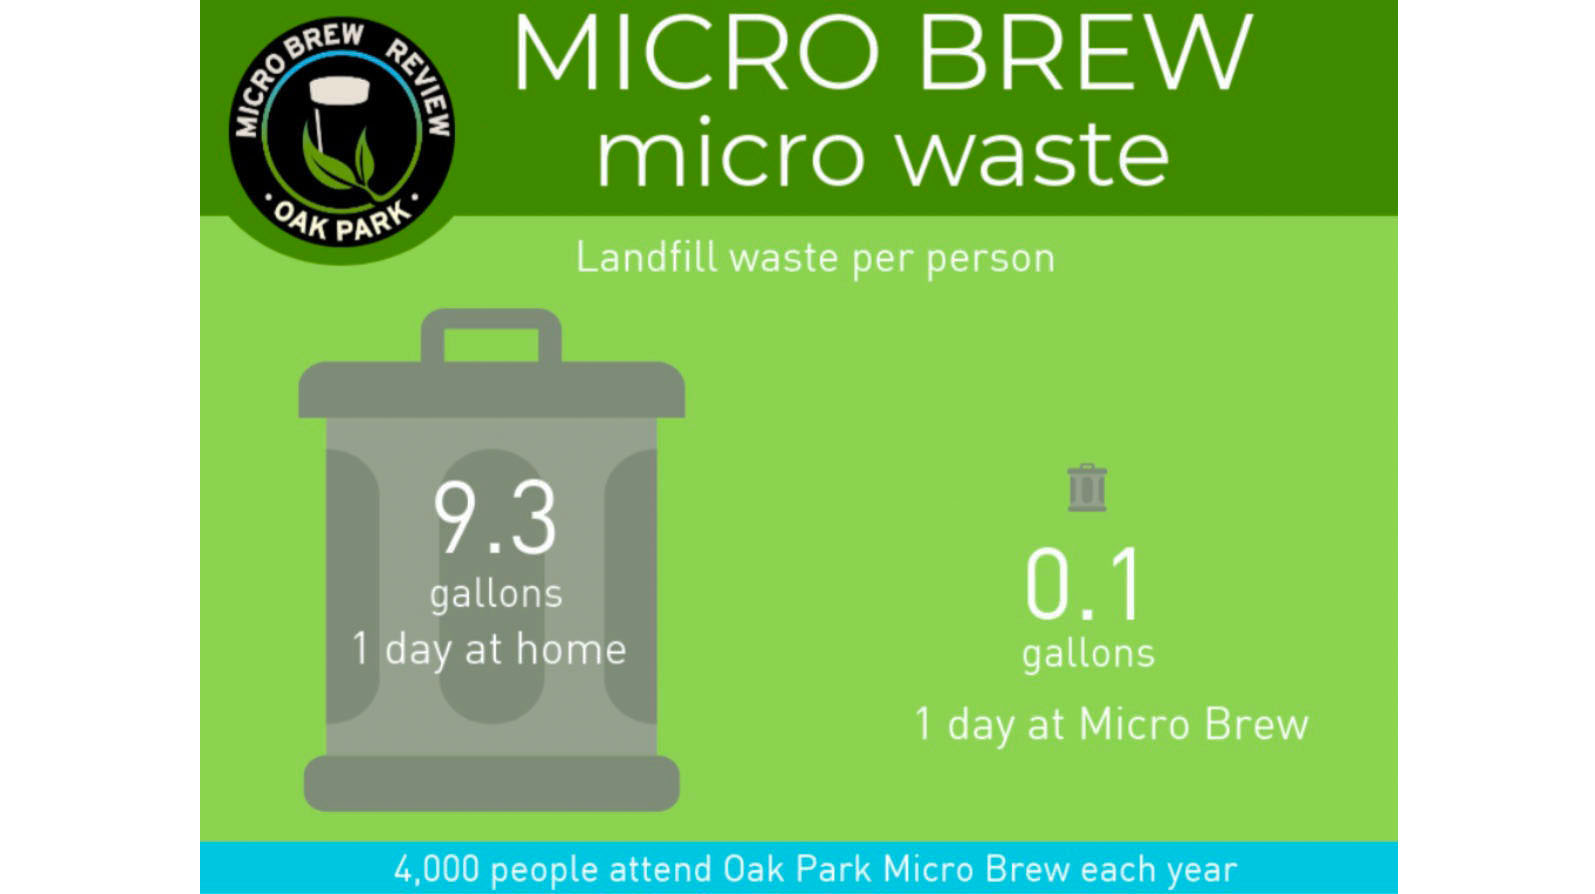 Micro Brew Review creates very little waste.